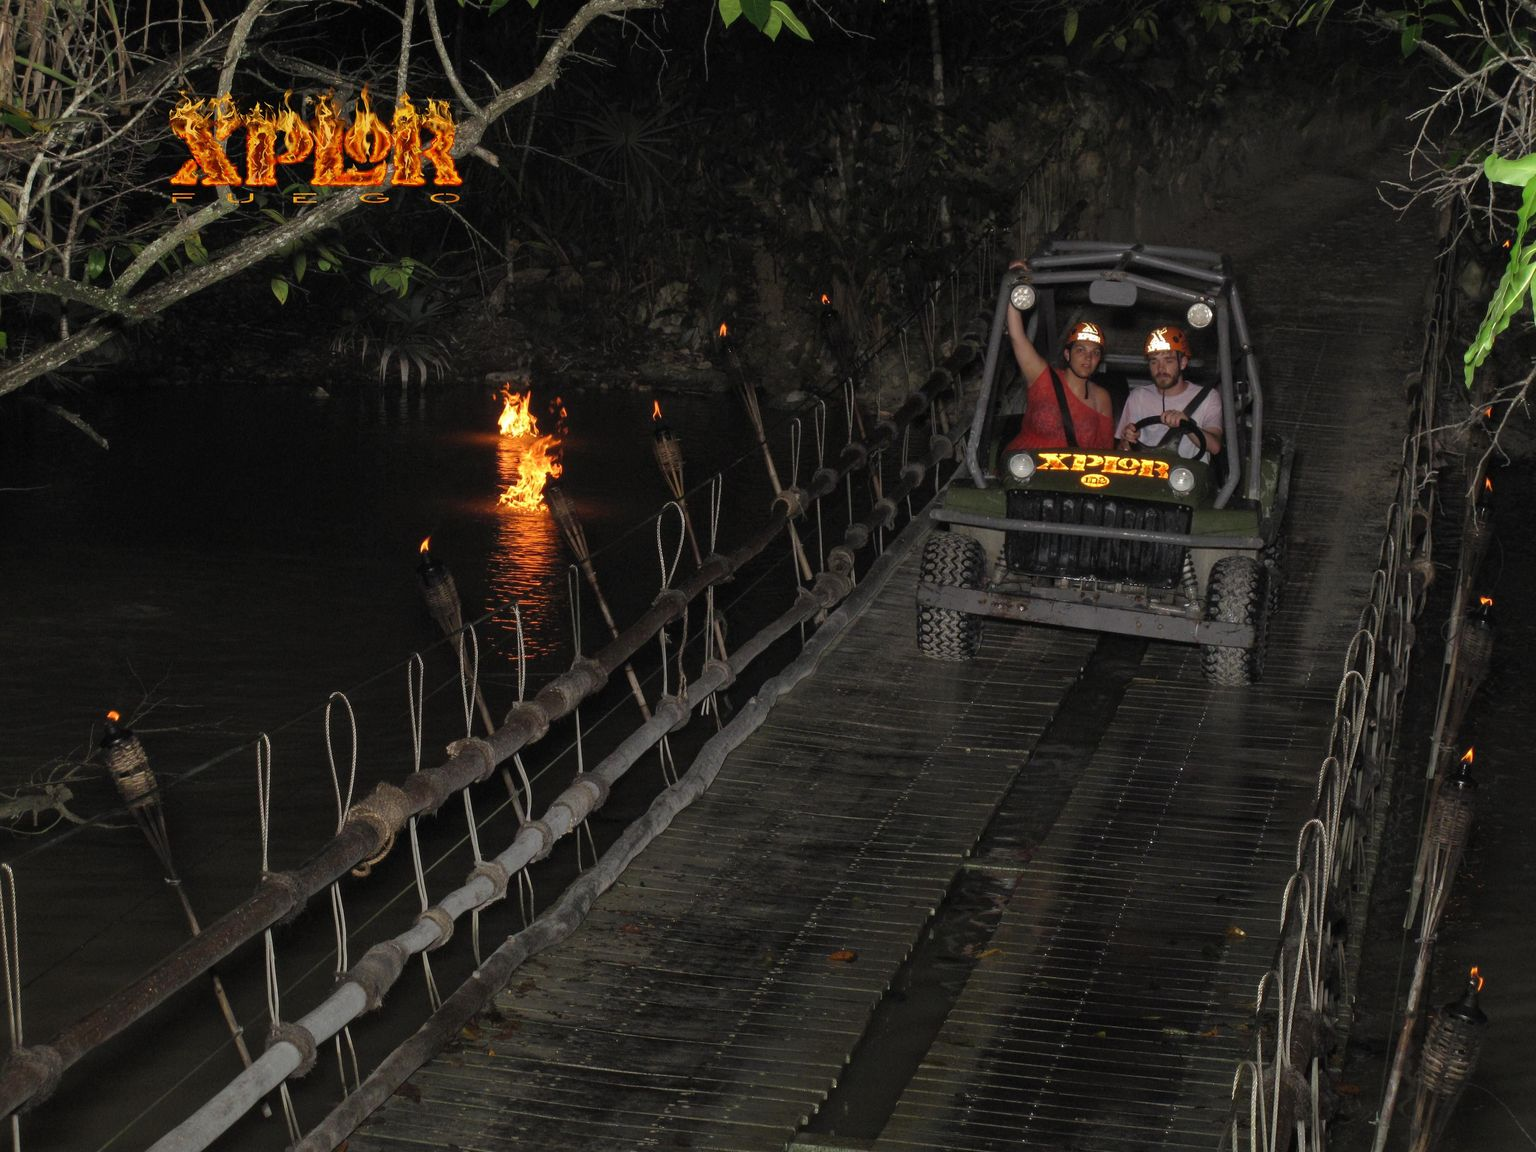 Nighttime Admission to Xplor Adventure Park with Transport